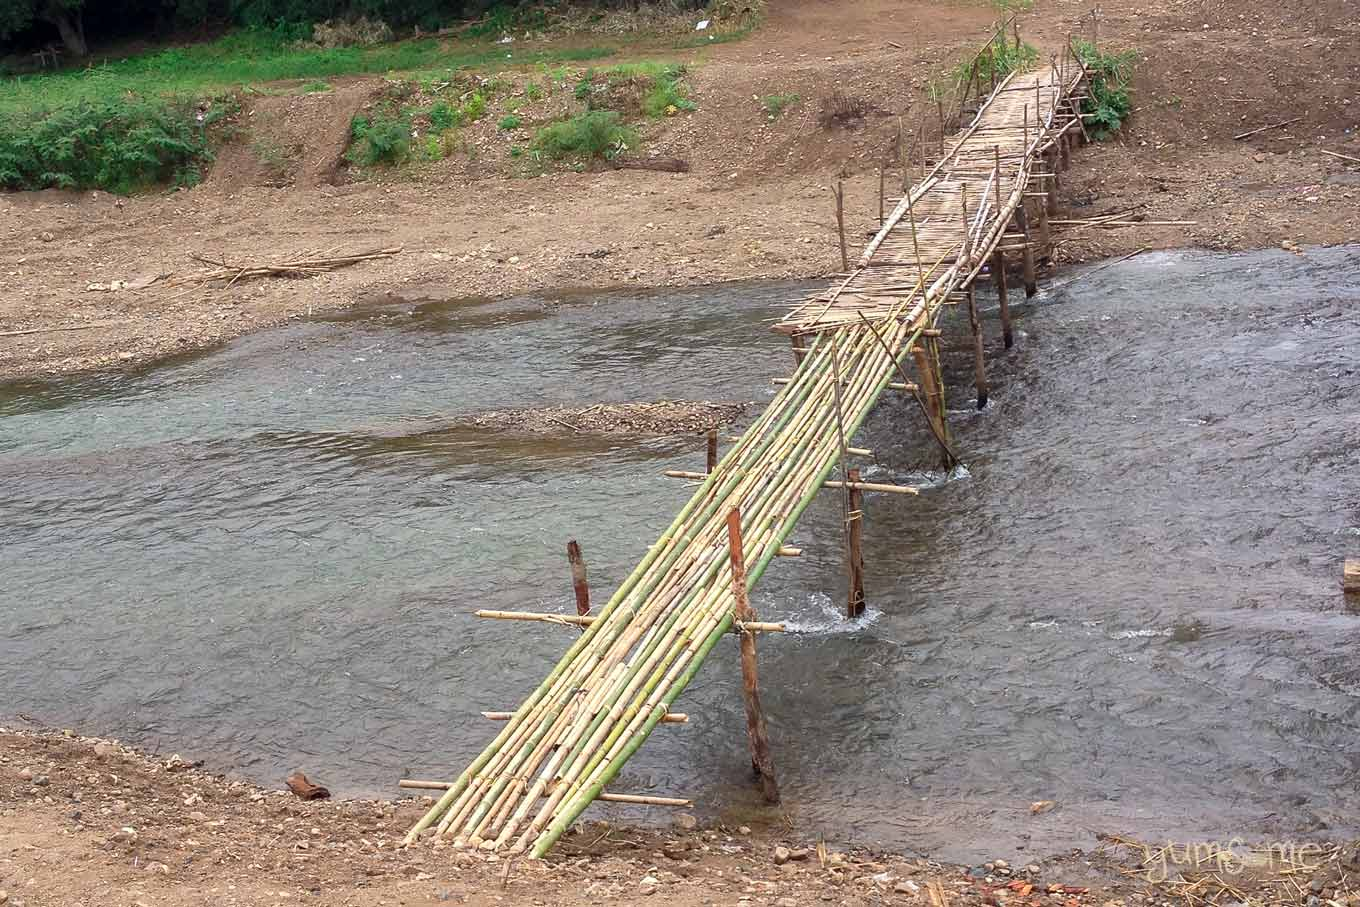 A bamboo bridge spanning a river.